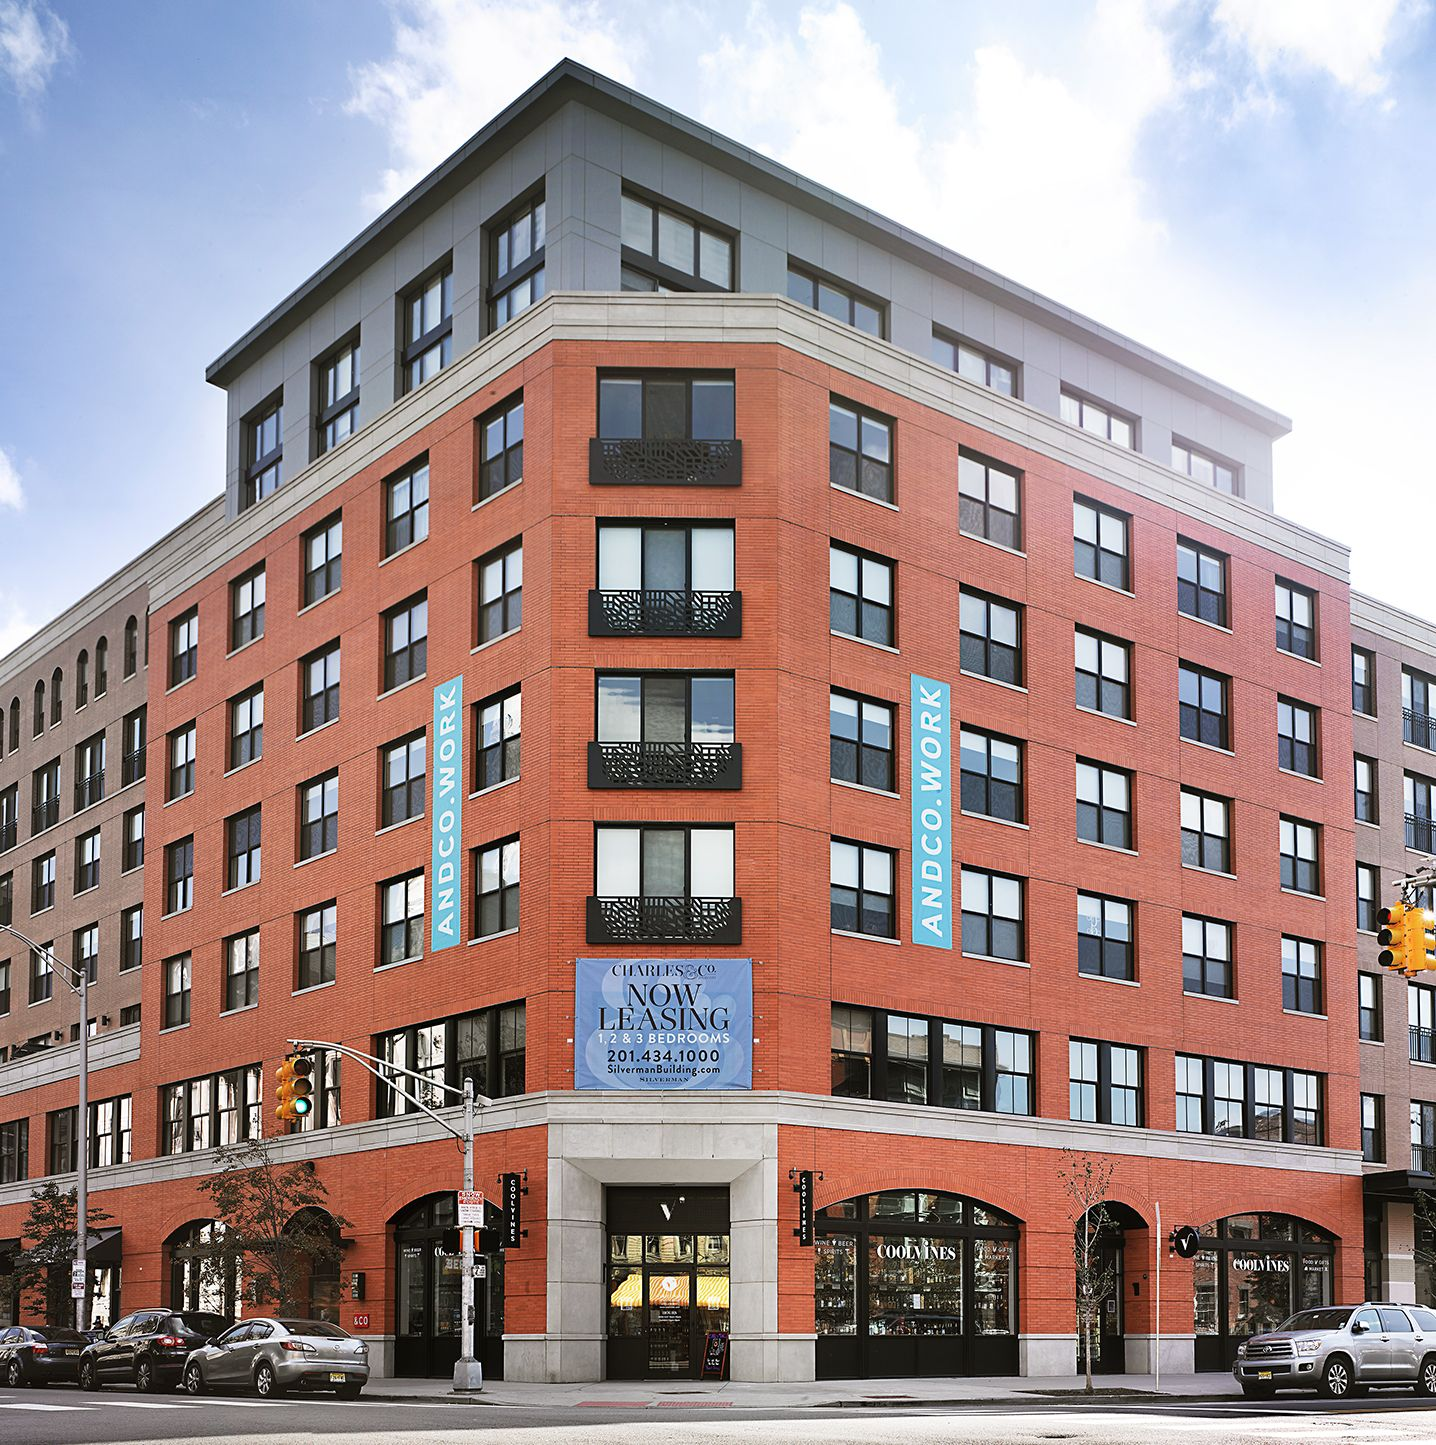 Charles Amp Co Rental Apartments Located In Downtown Jersey